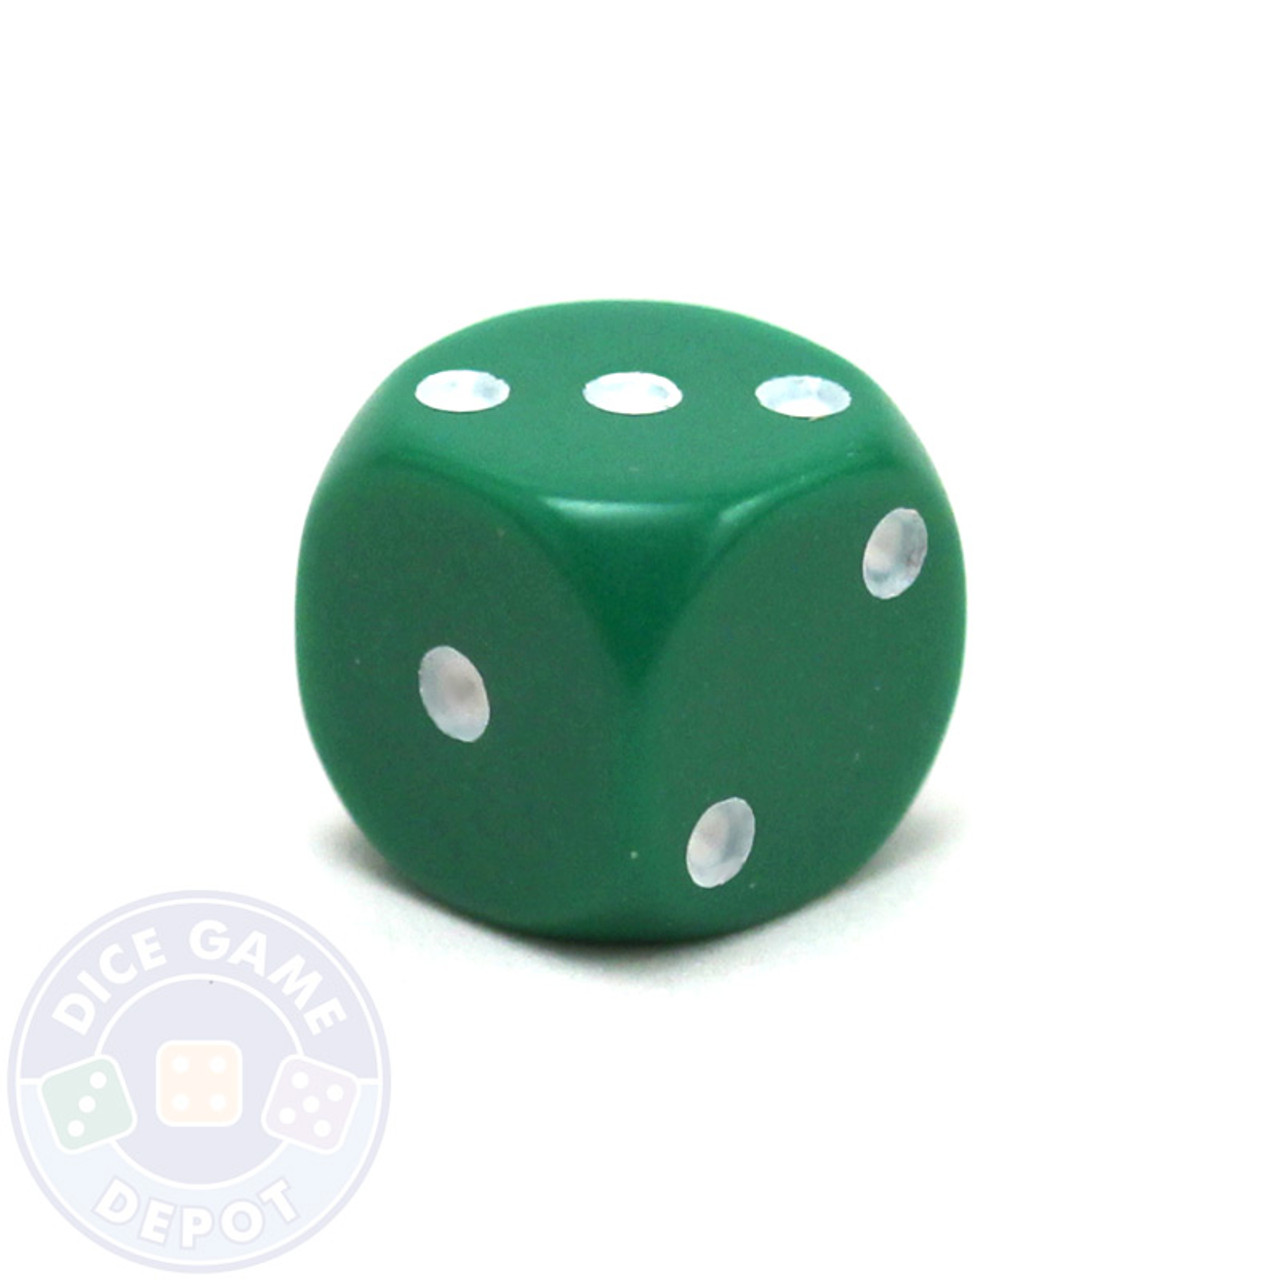 Opaque Round Corner Dice   Green 12mm d6   Dice Game Depot Round corner 12mm opaque dice   Green